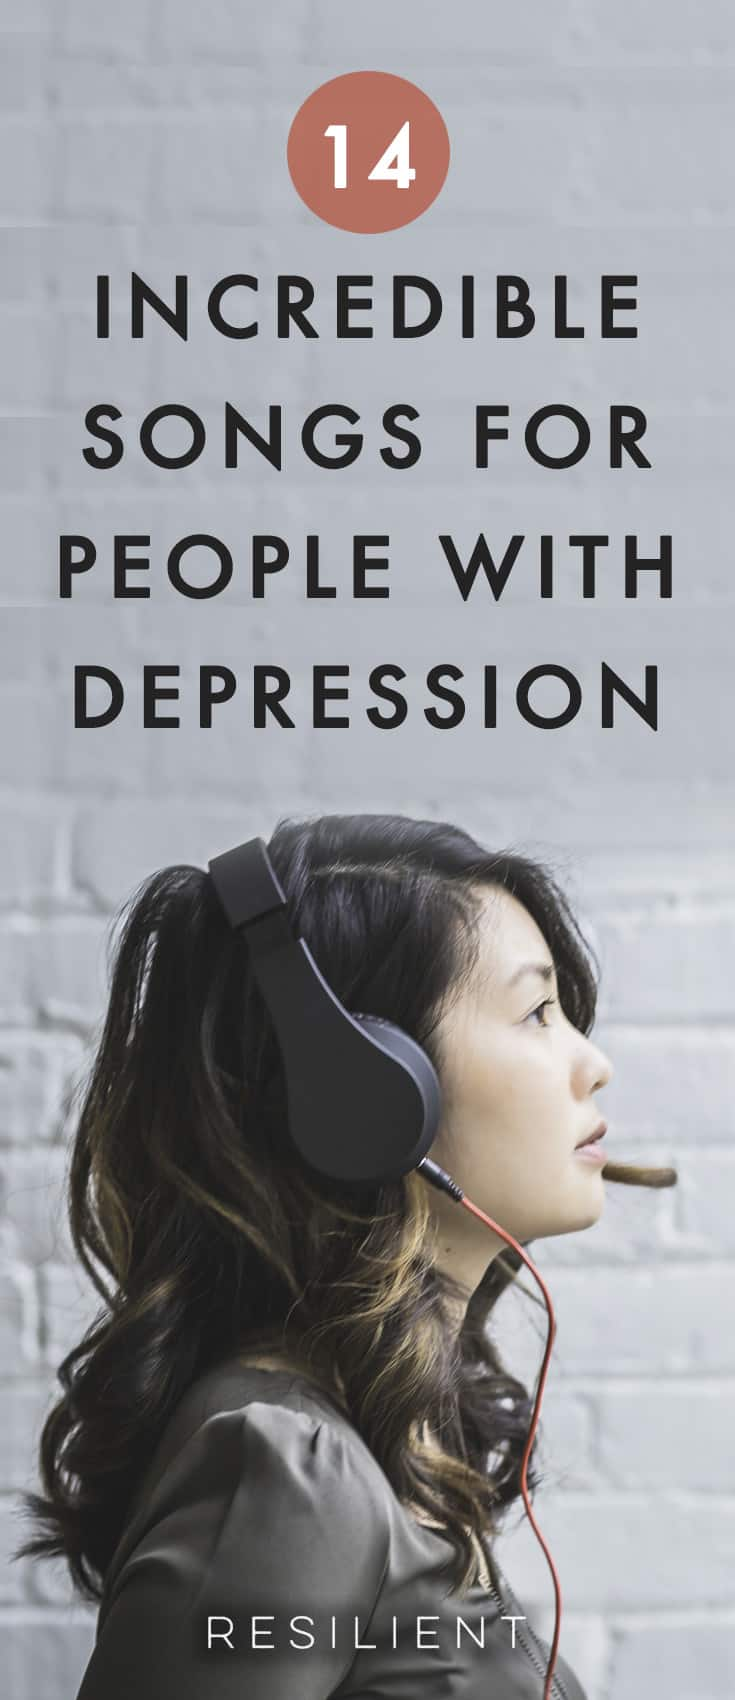 I created this list of the 14 best songs for people with depression originally with the inspirational songs I listen to in order tolift my spirits ifI'mhaving a bad day, and now I want to share it with you. Here are 14 songs for someone with depression.